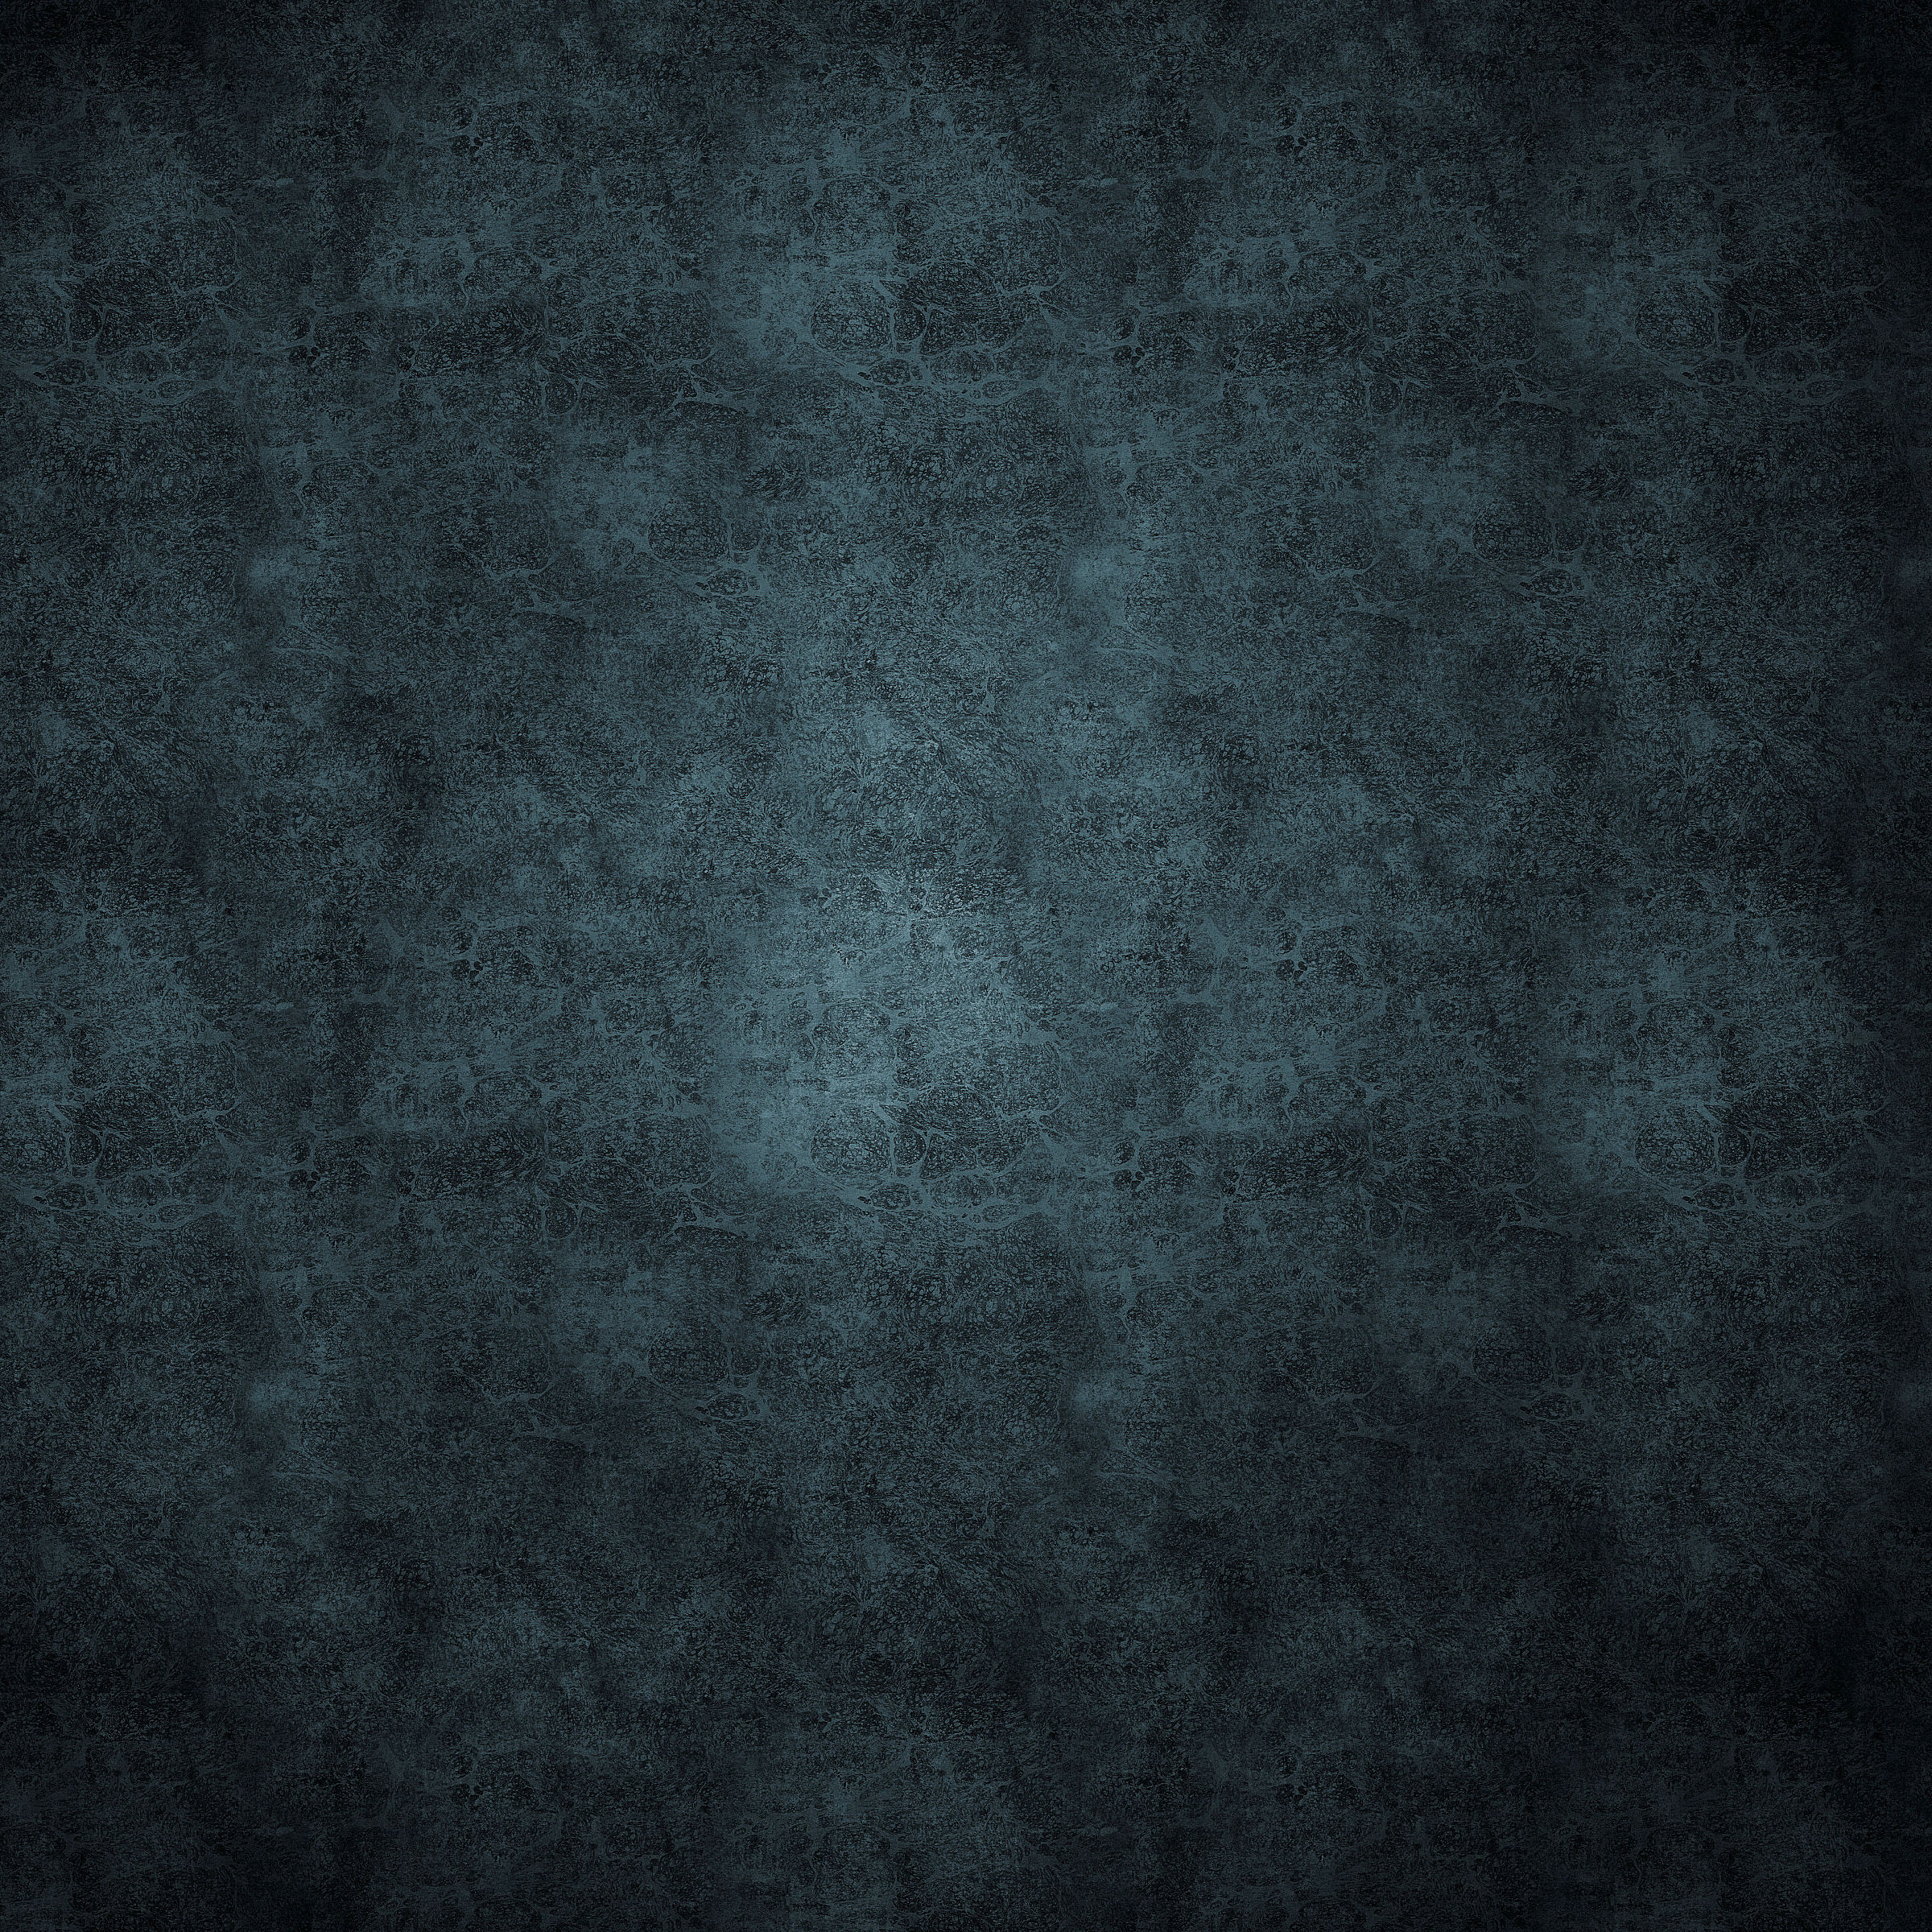 free high resolution backgrounds and textures css author - HD2400×2400